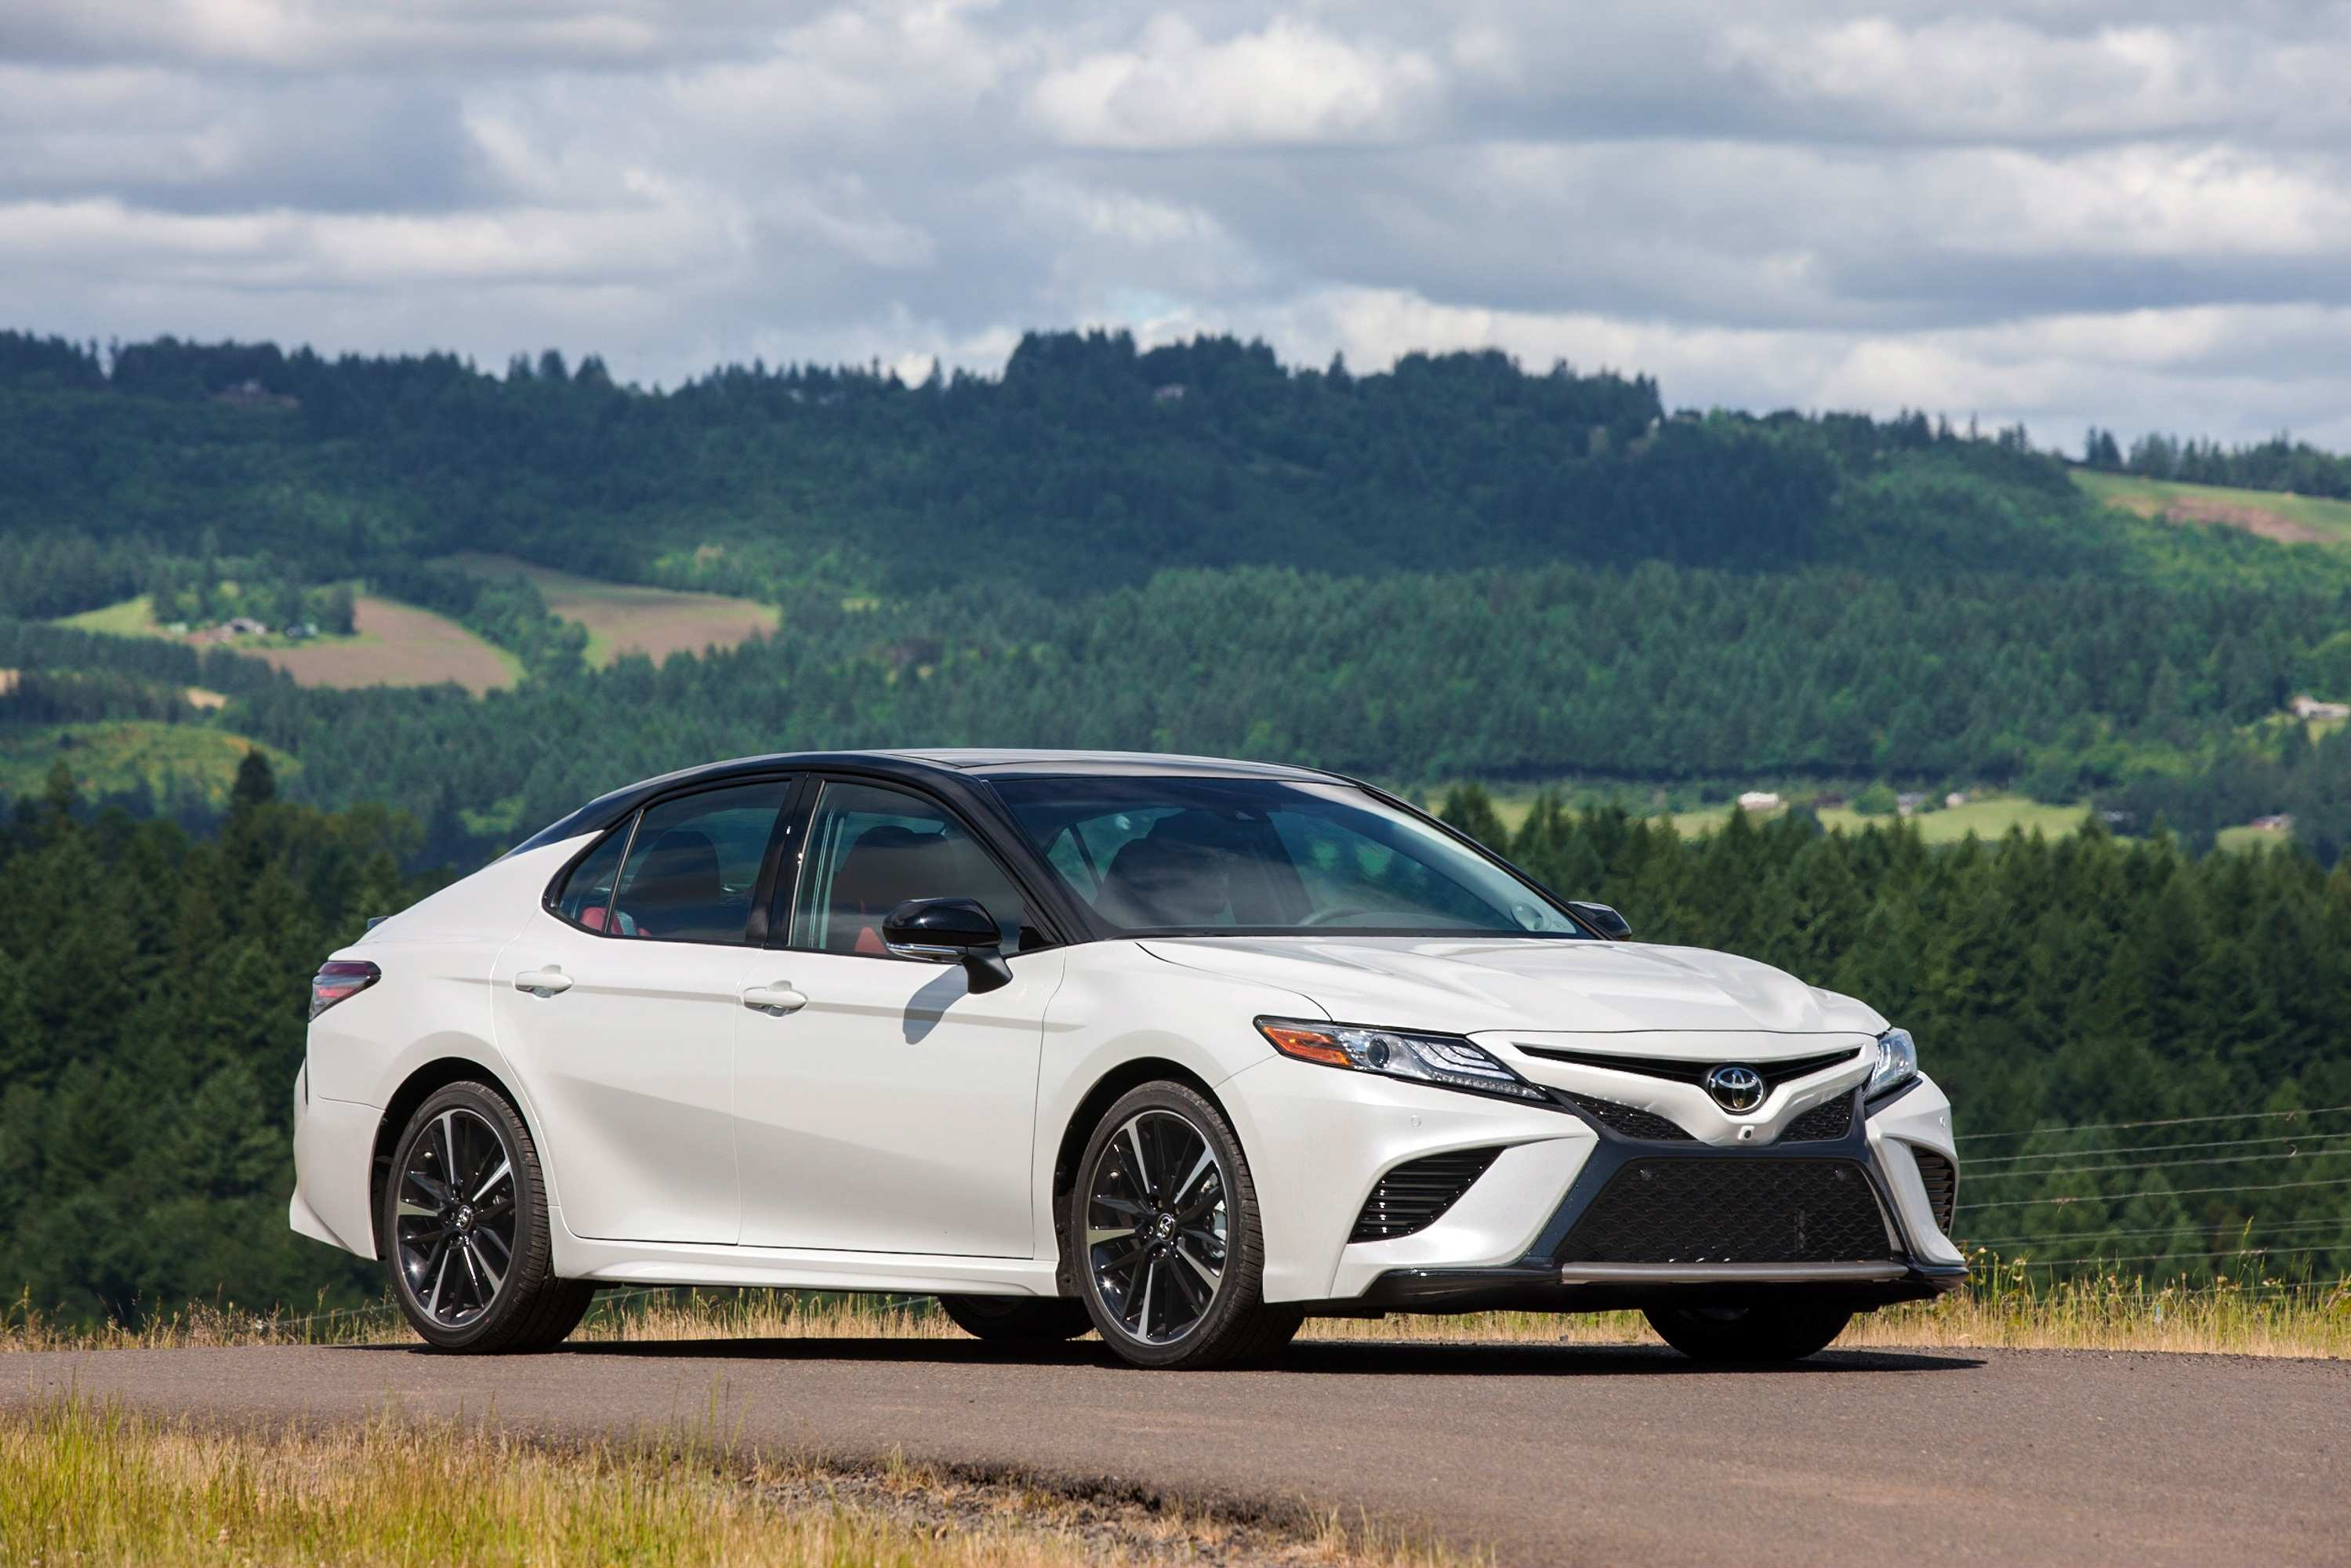 95 Best Review The Toyota 2019 V6 Release Date Overview for The Toyota 2019 V6 Release Date